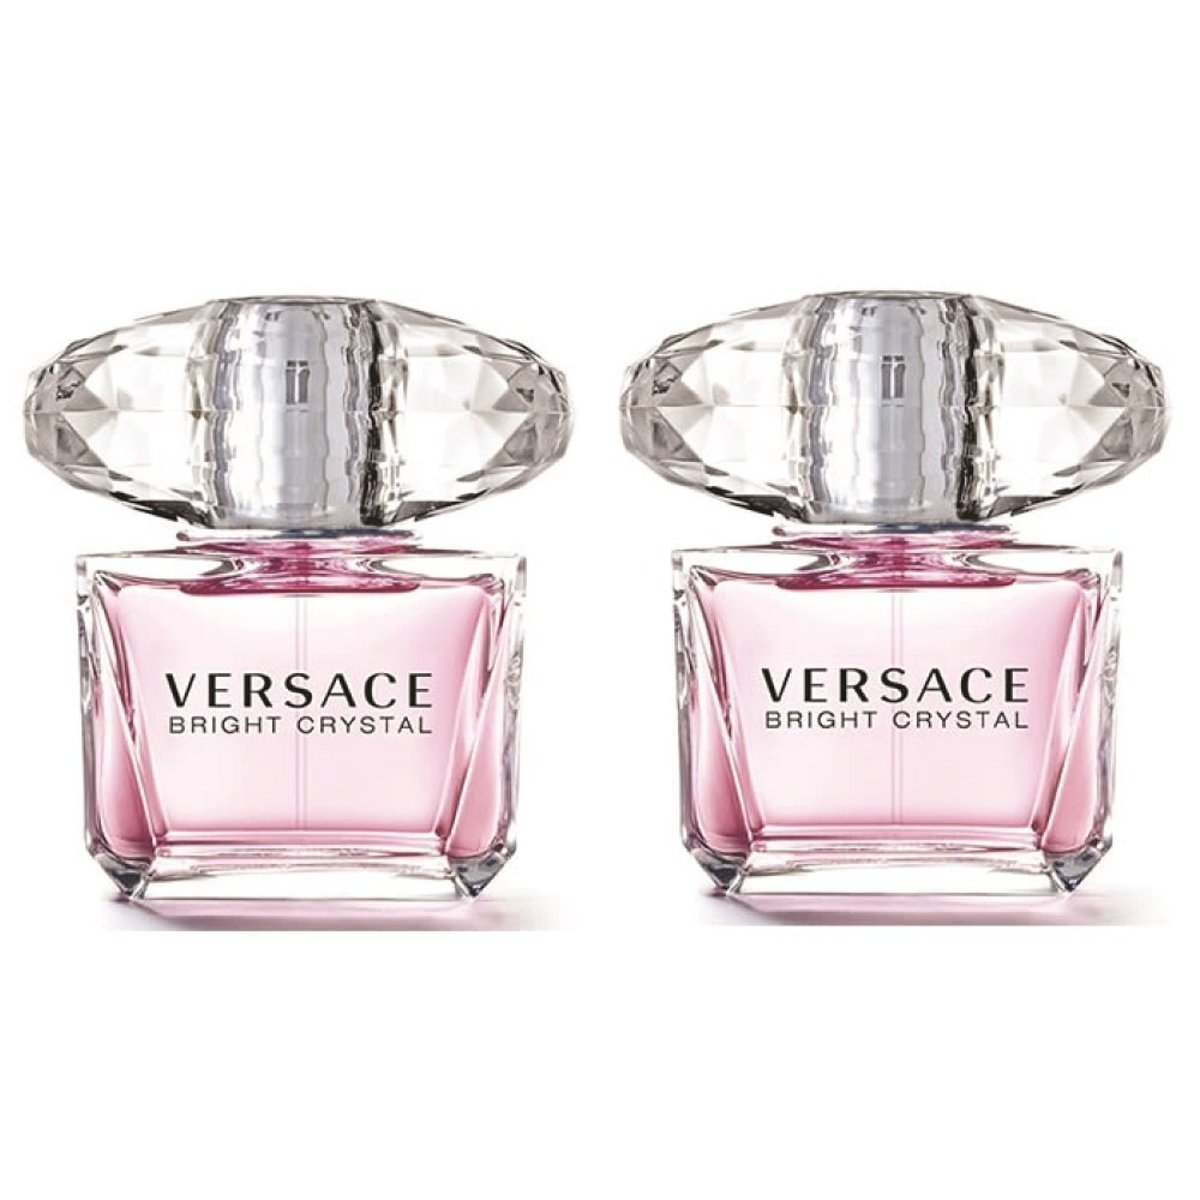 VERSACE Bright Crystal  perfume 30ML*2 (Parallel Import)